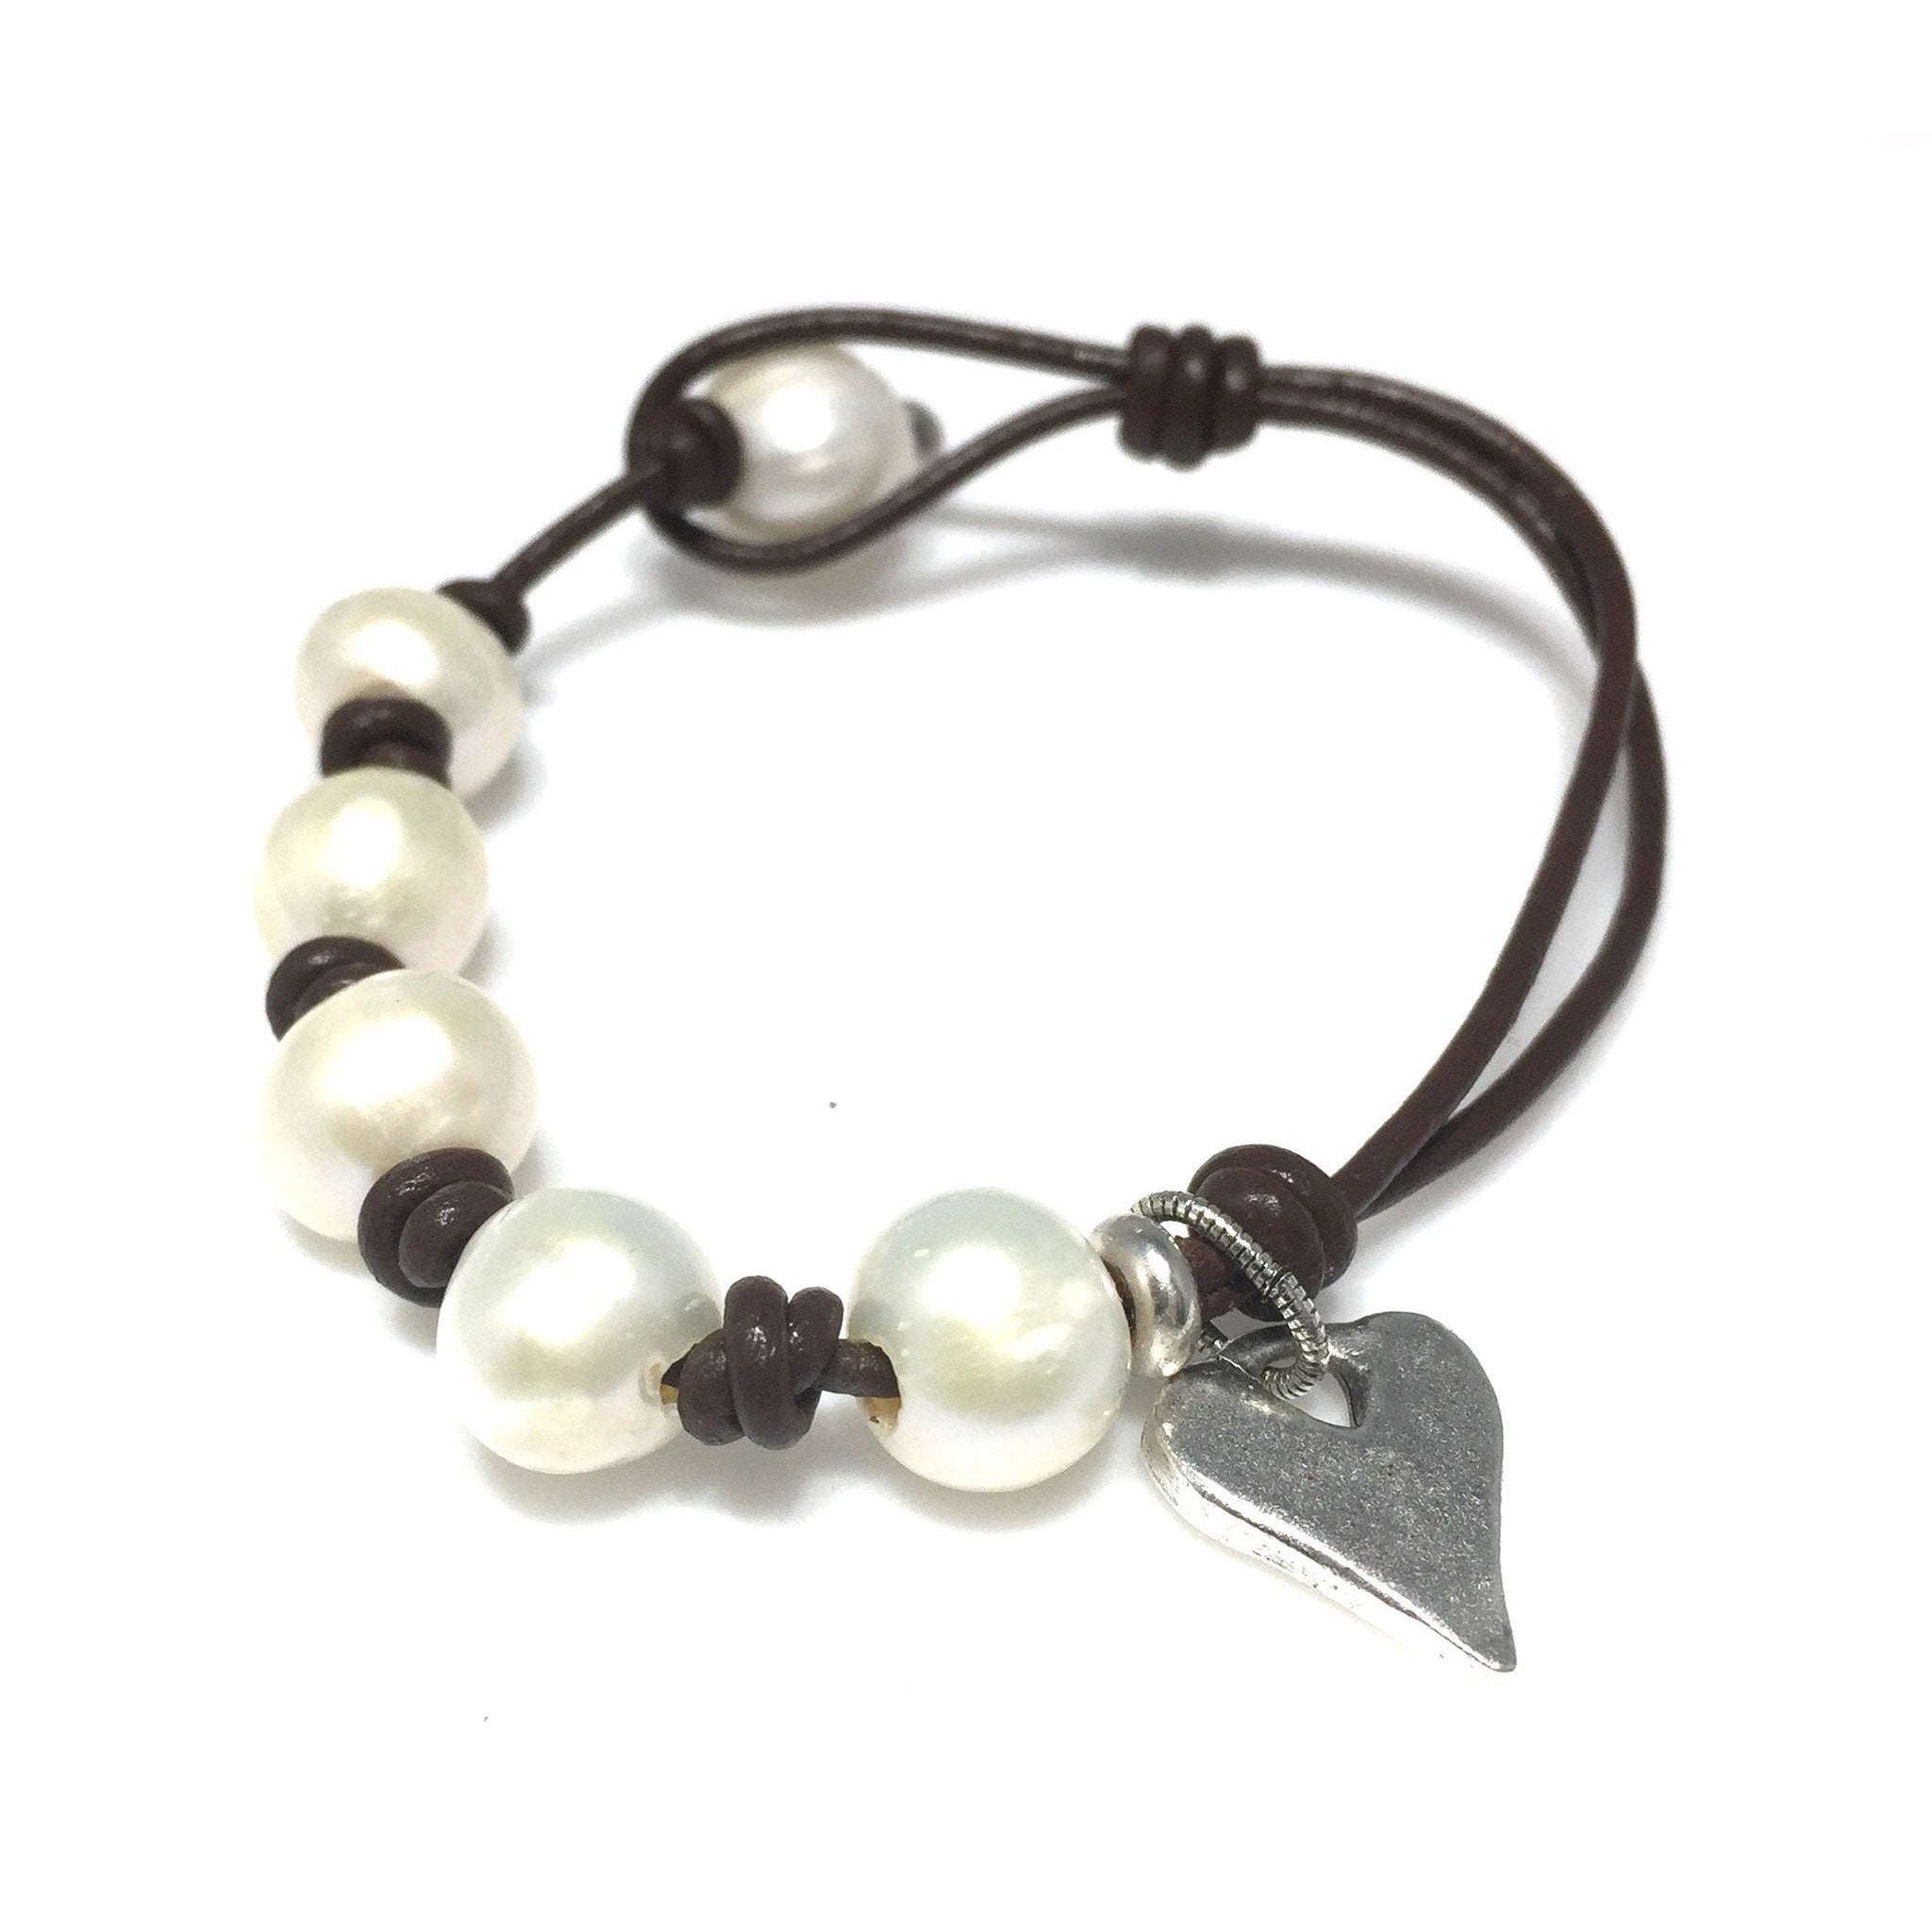 Leather Pearl Knotted Charm Bracelet - SPREE